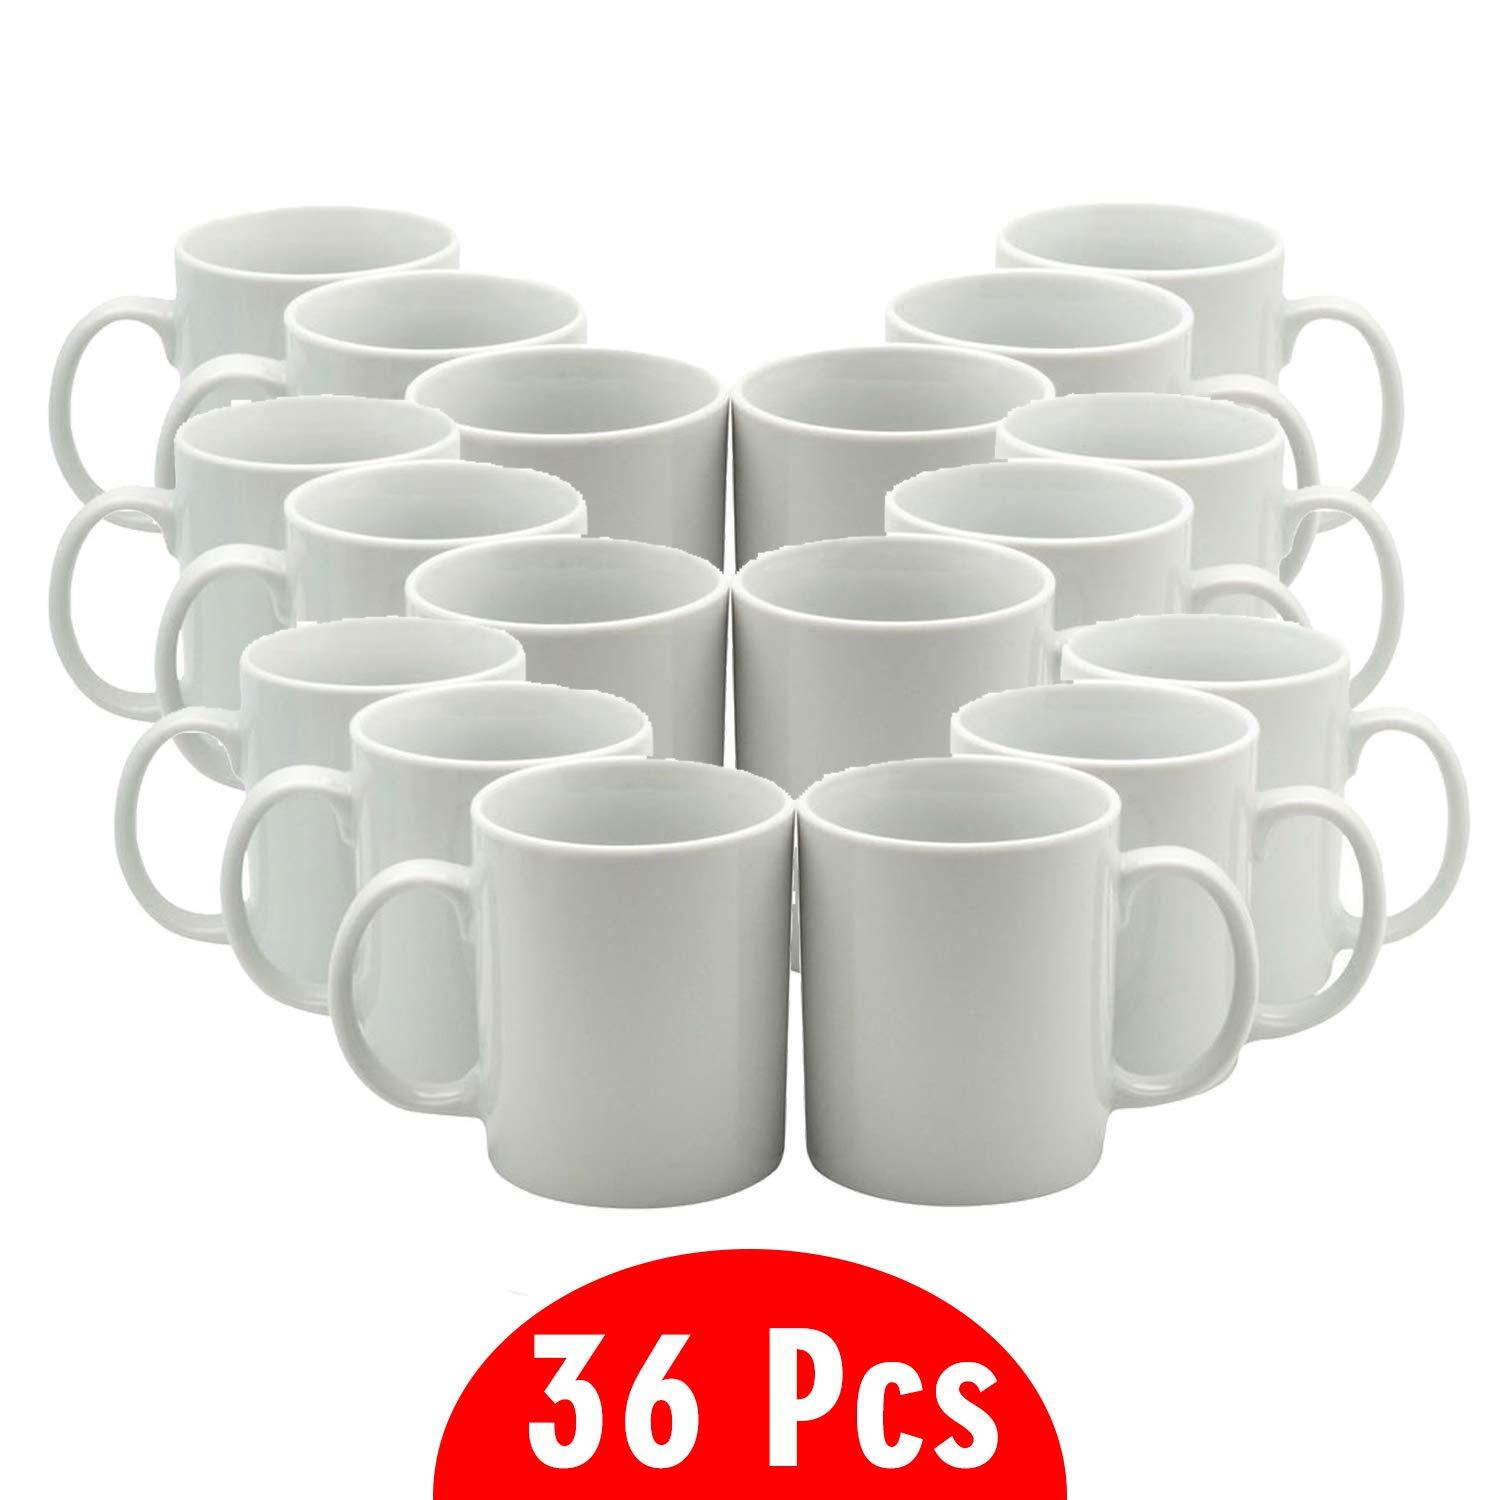 11 oz Sublimation Blank Ceramic Coffee Mugs Case of 36 by TWISTED ENVY